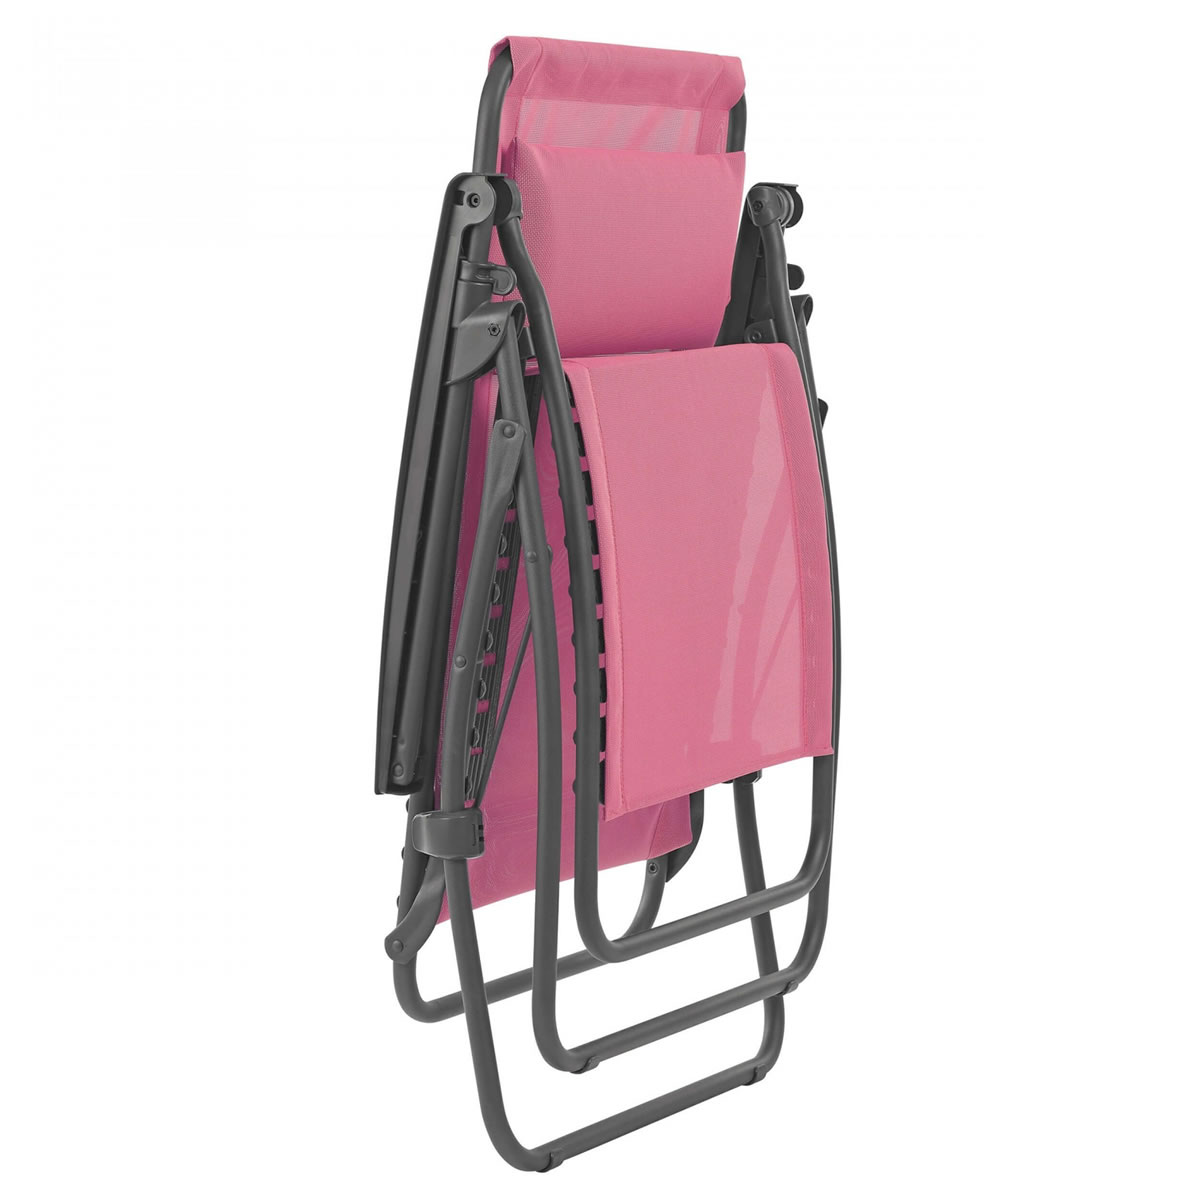 Extra image of Lafuma R Clip Recliner in Batyline Begonia Pink - LFM4020